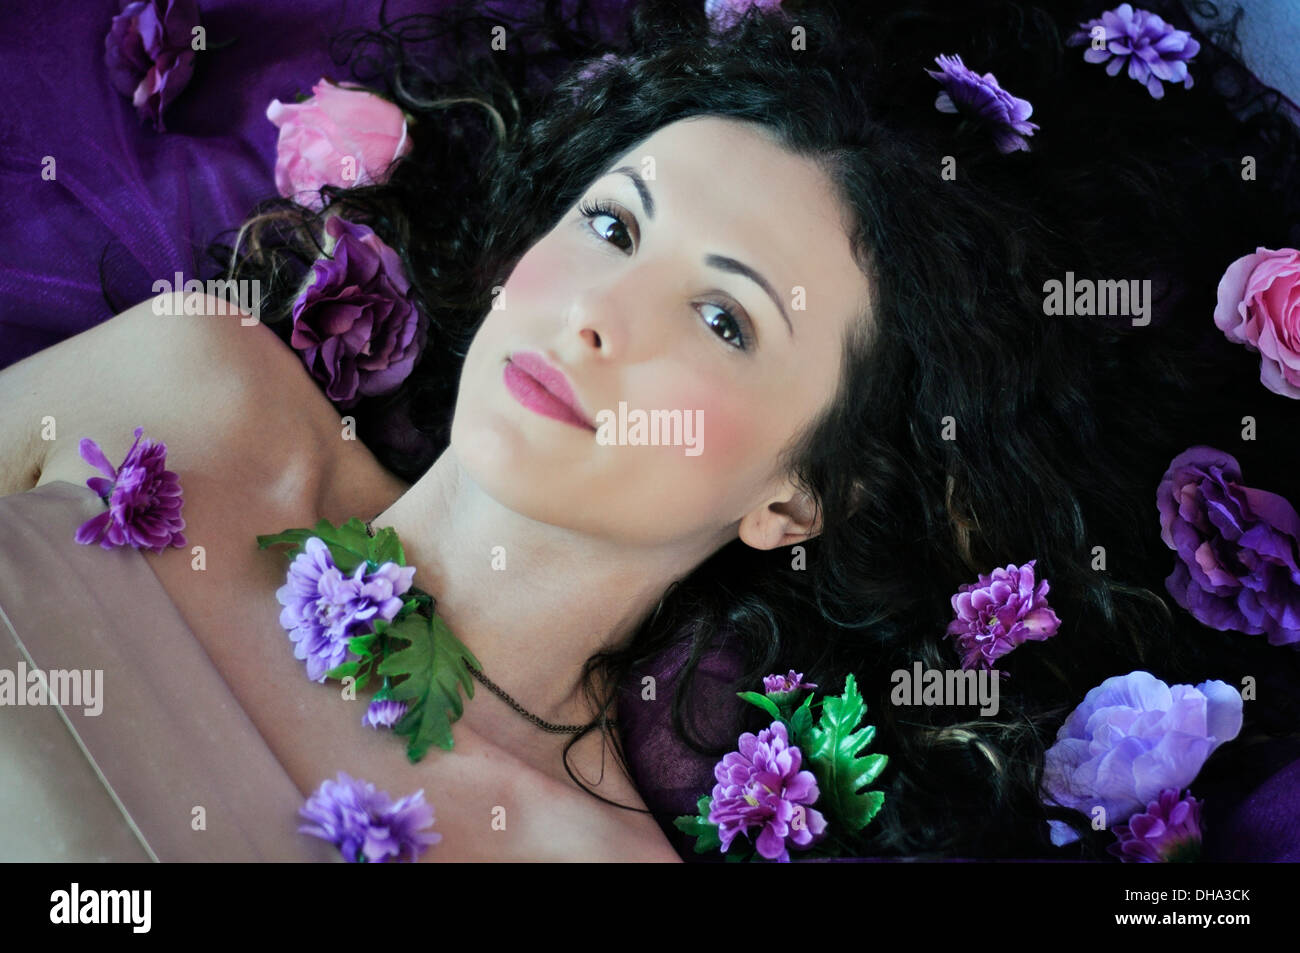 Portrait of a young Beautiful woman lying on bed Photo Stock